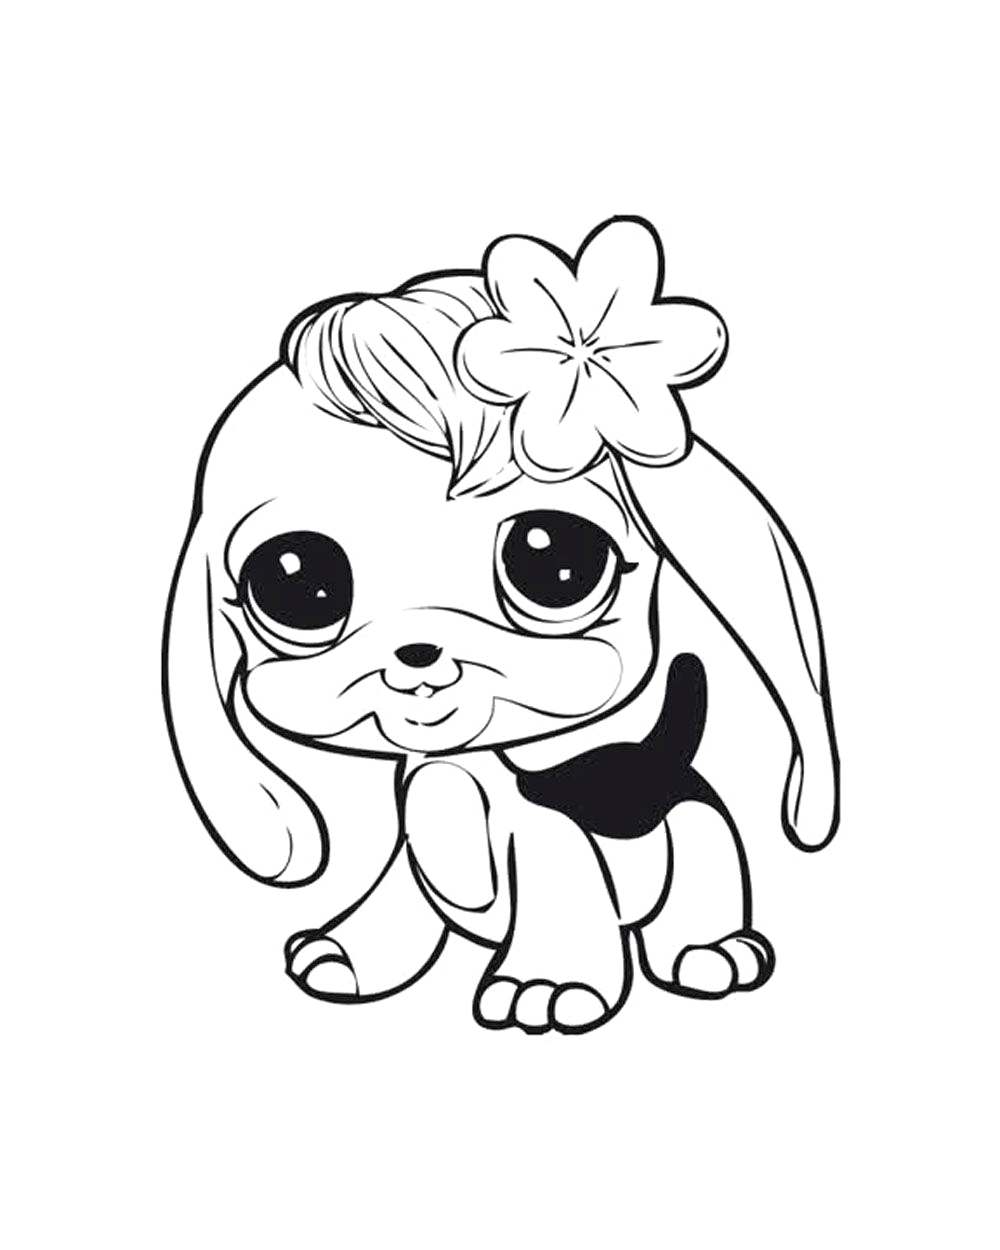 Free Coloring Pages Of Littlest Pet Shop Littlest Pet Shops Coloring Page for My Kids